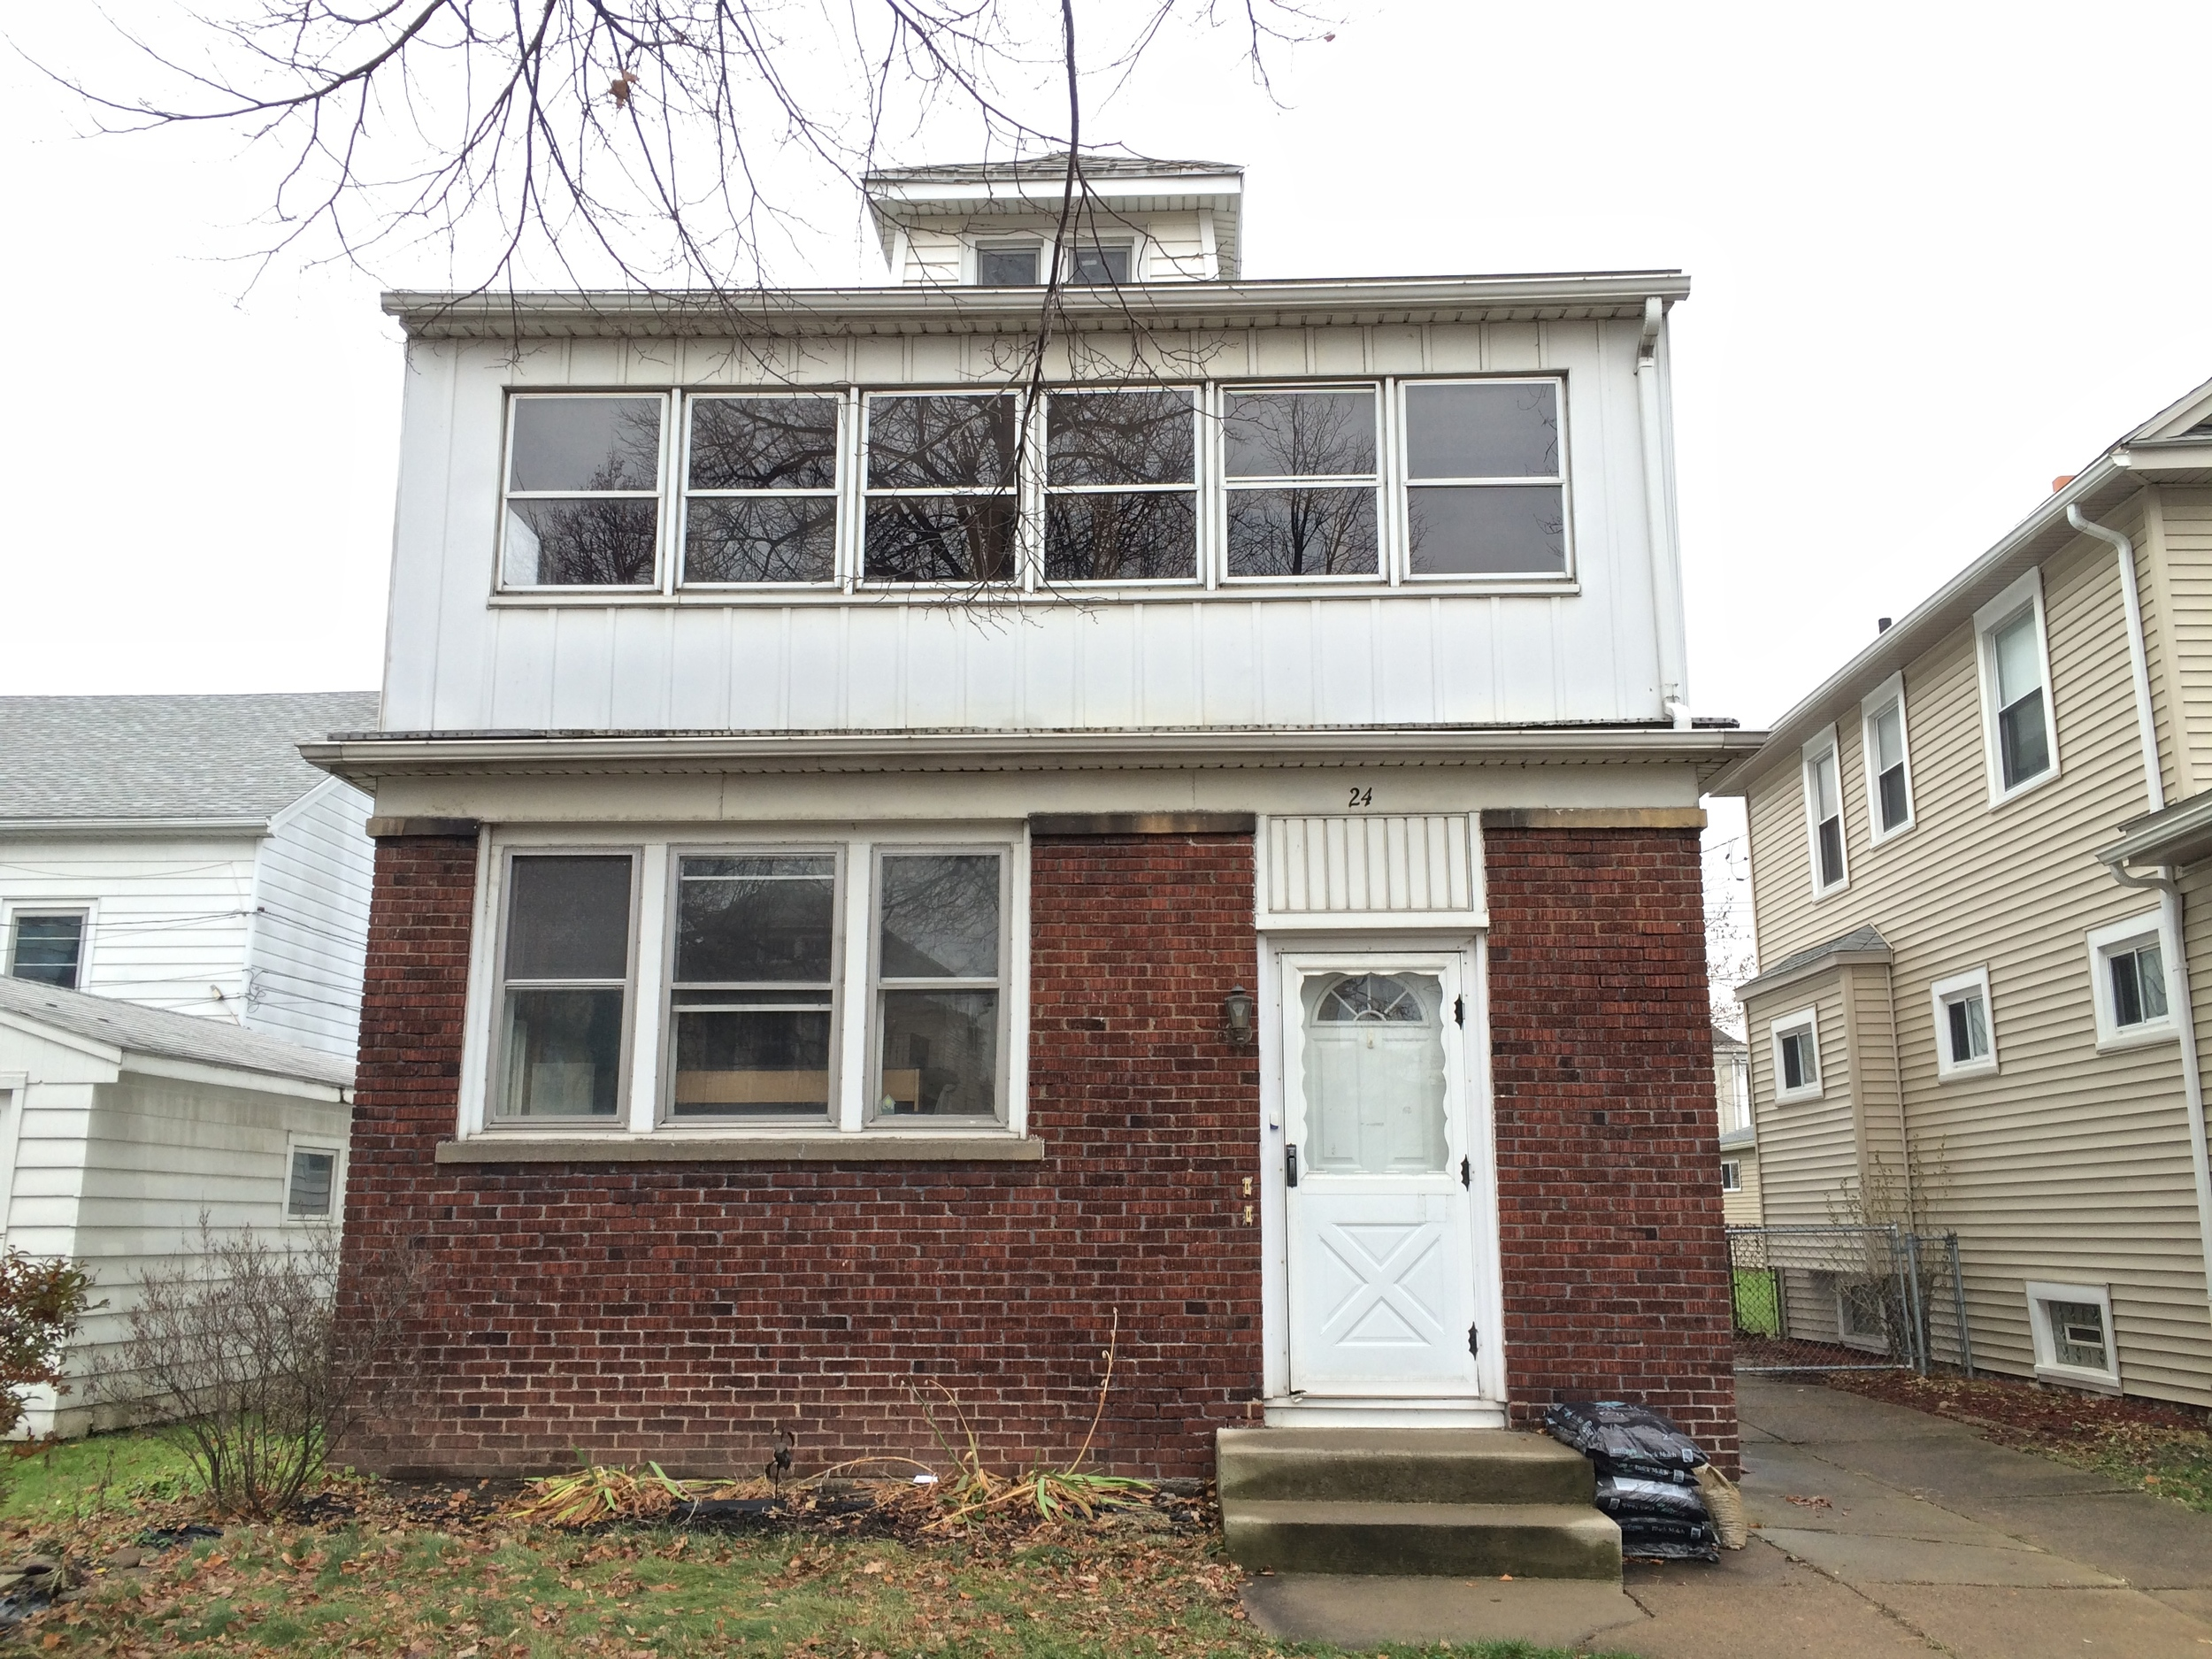 SOLD: 24 Wilbury, N Buffalo | $134,900